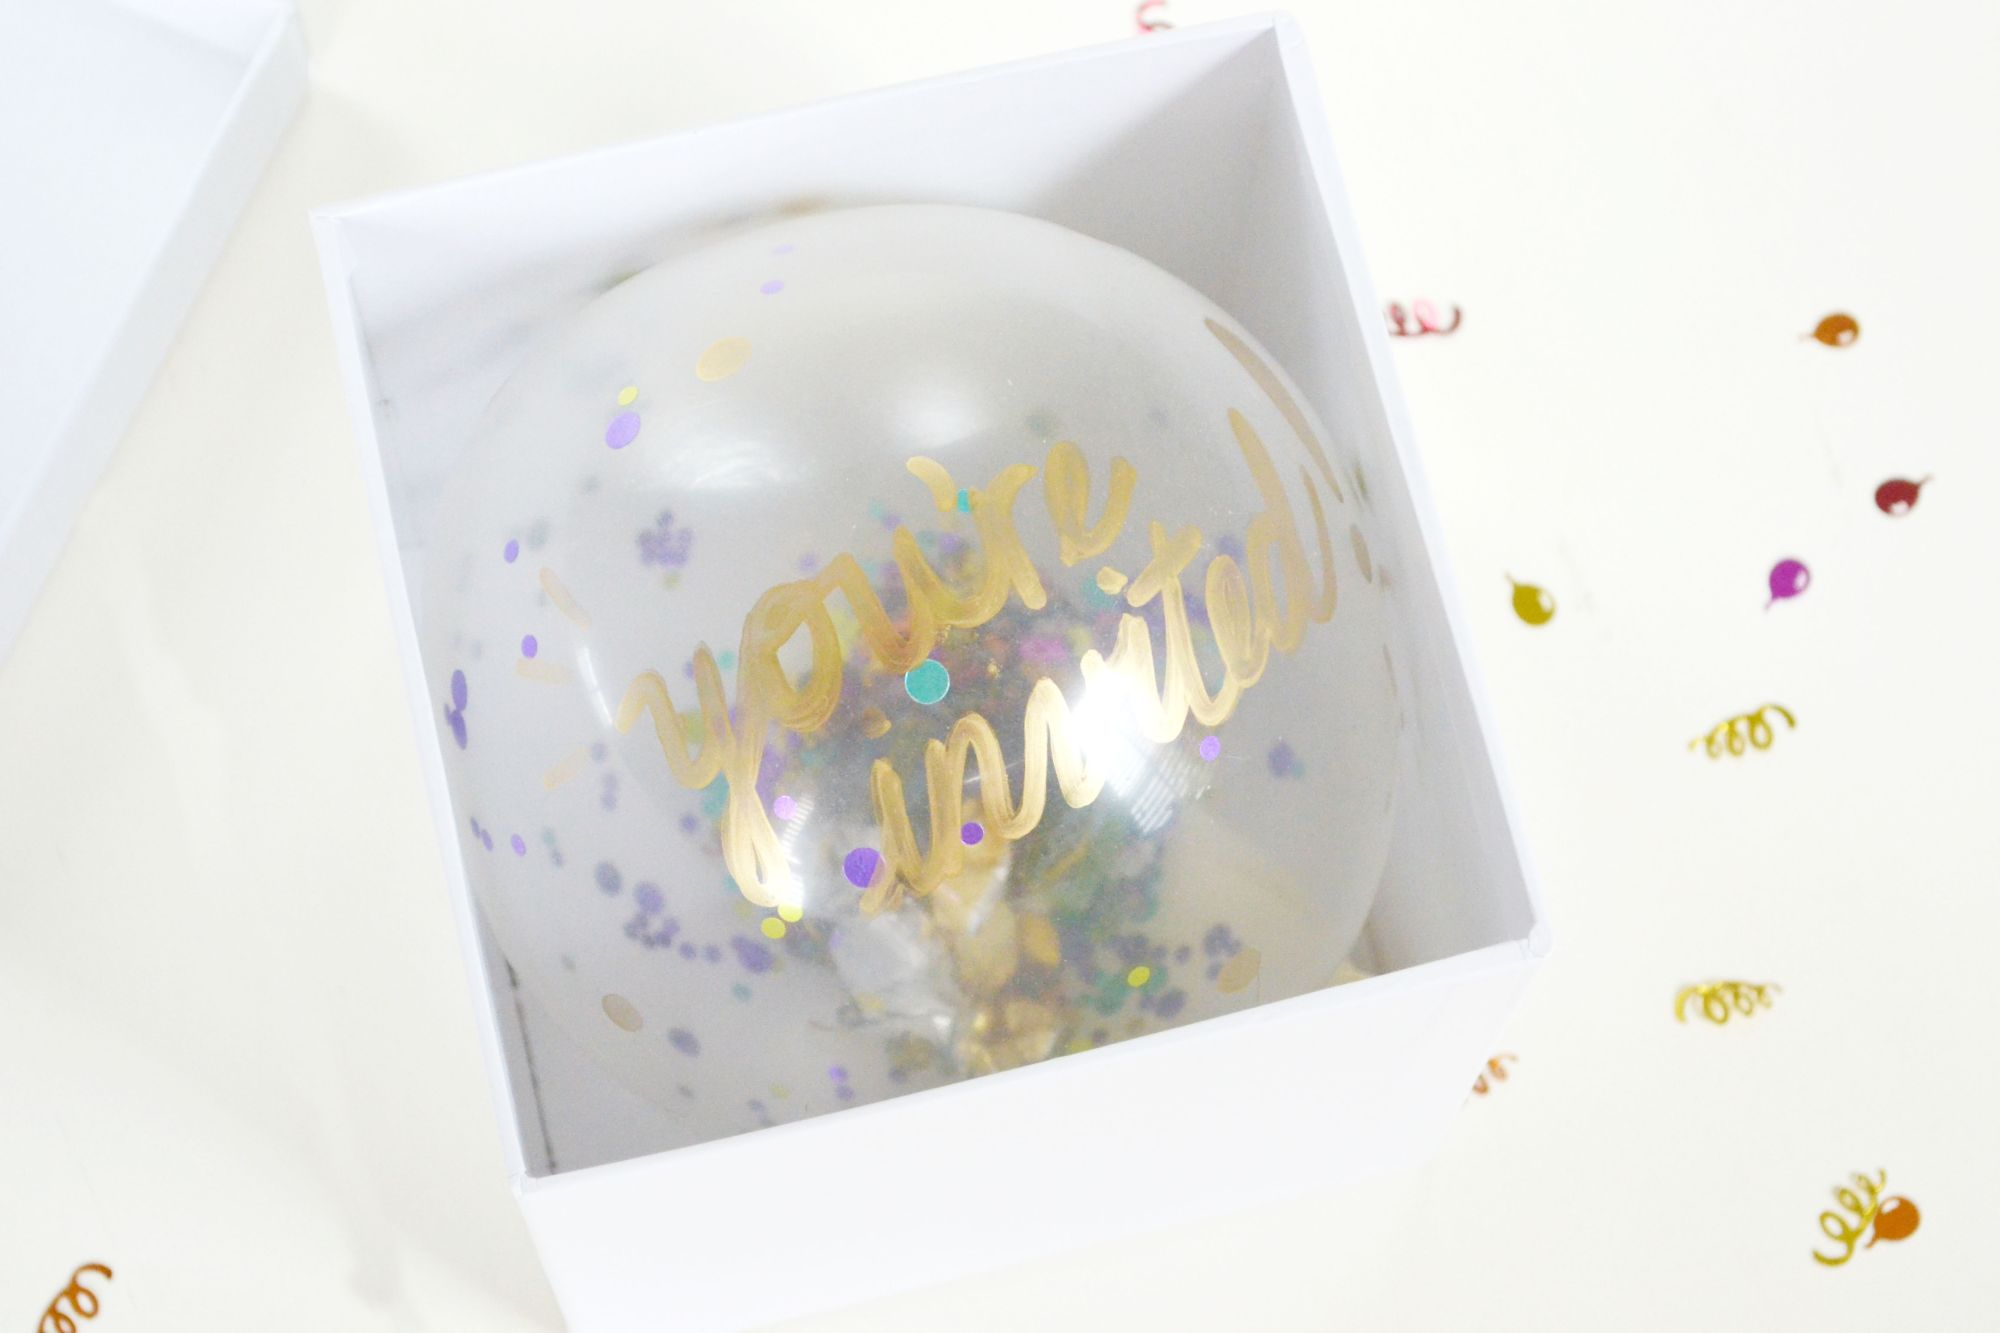 Confetti Balloon Invites White Box